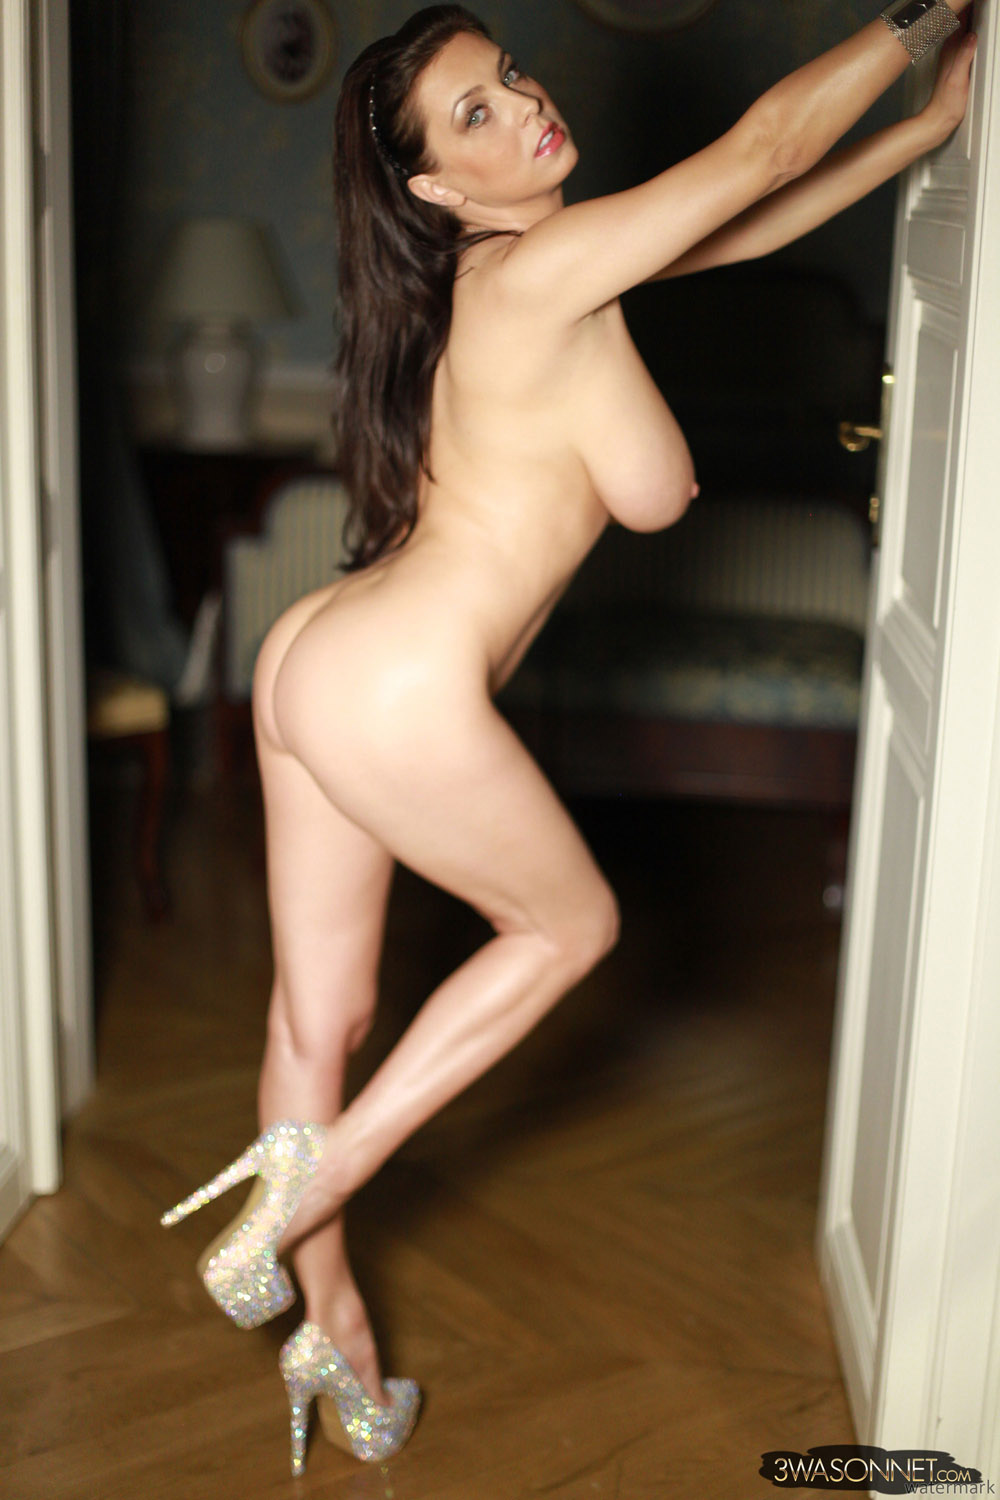 Naked girl mirror high heels